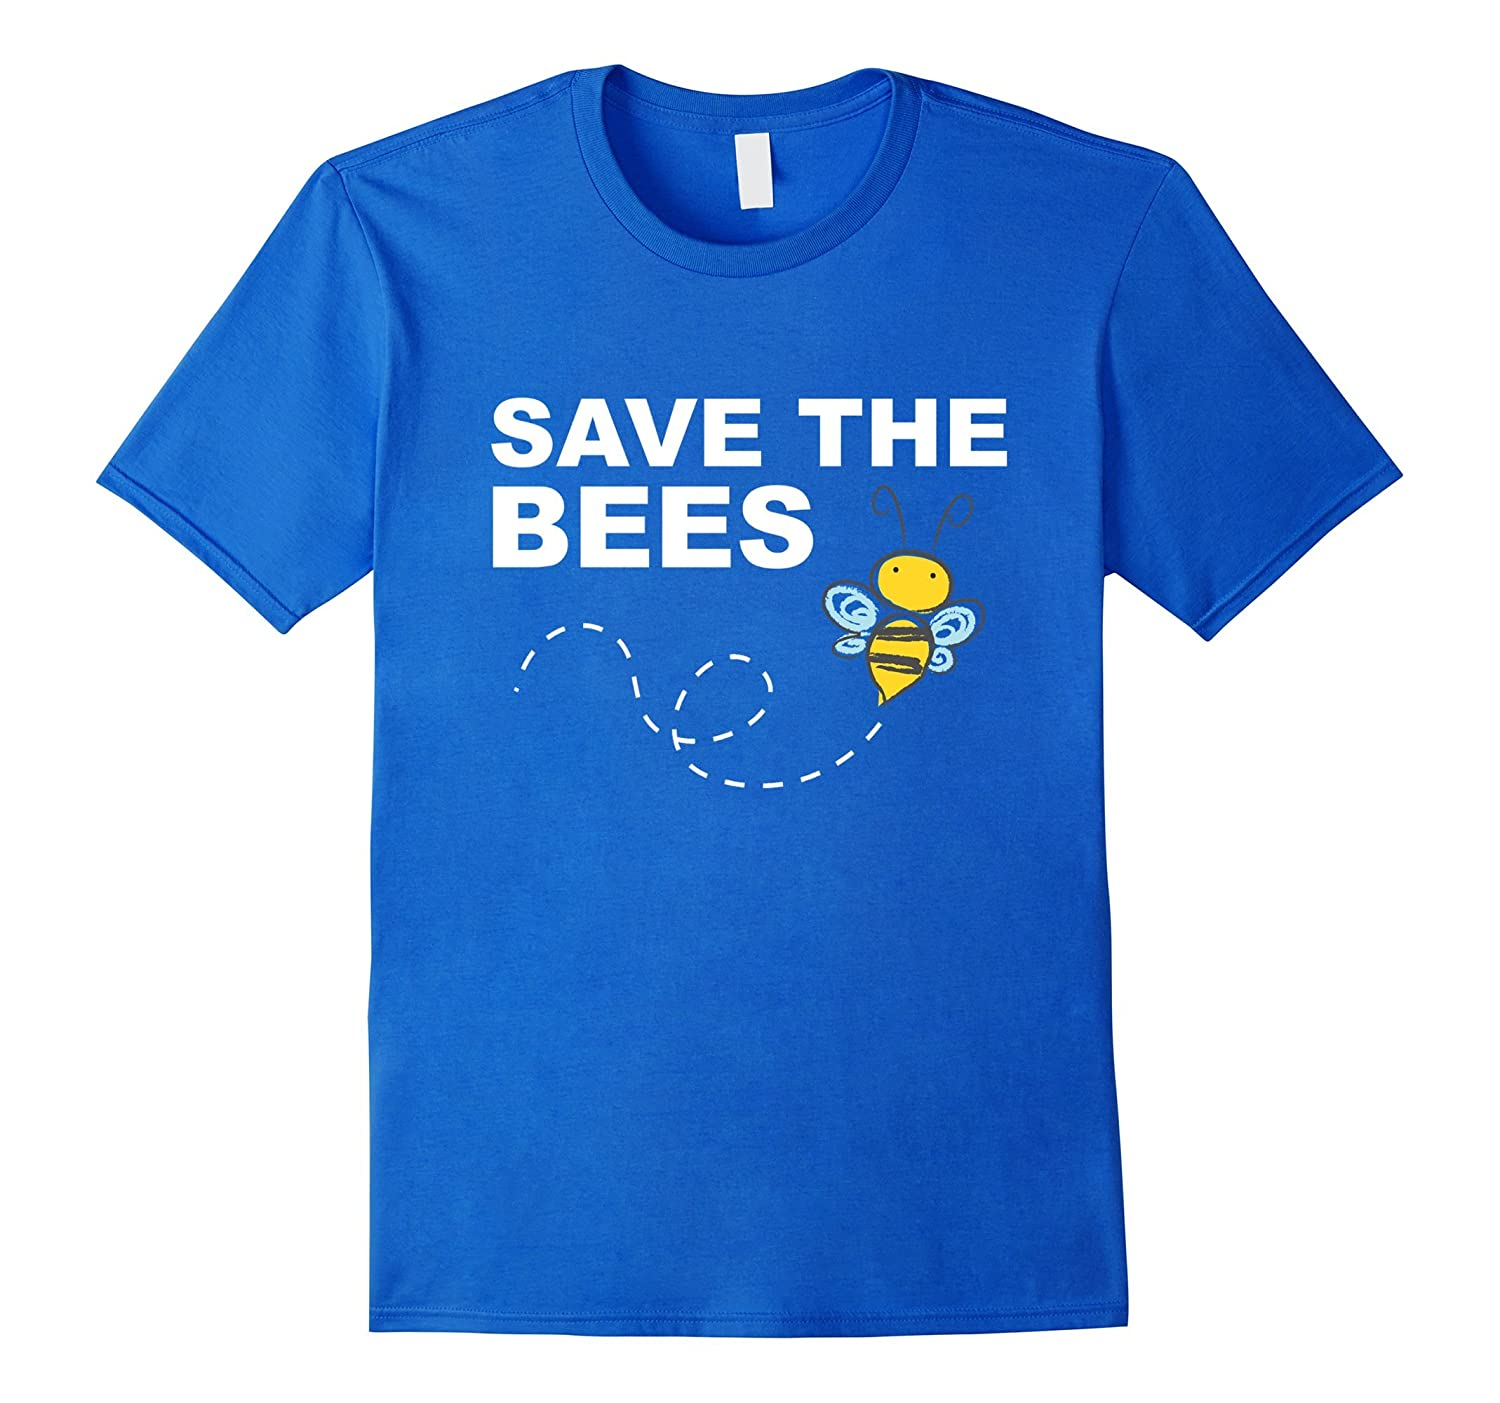 a5ad3e09a623 Save the Bees Shirt for Men Women and Children-TD – Teedep